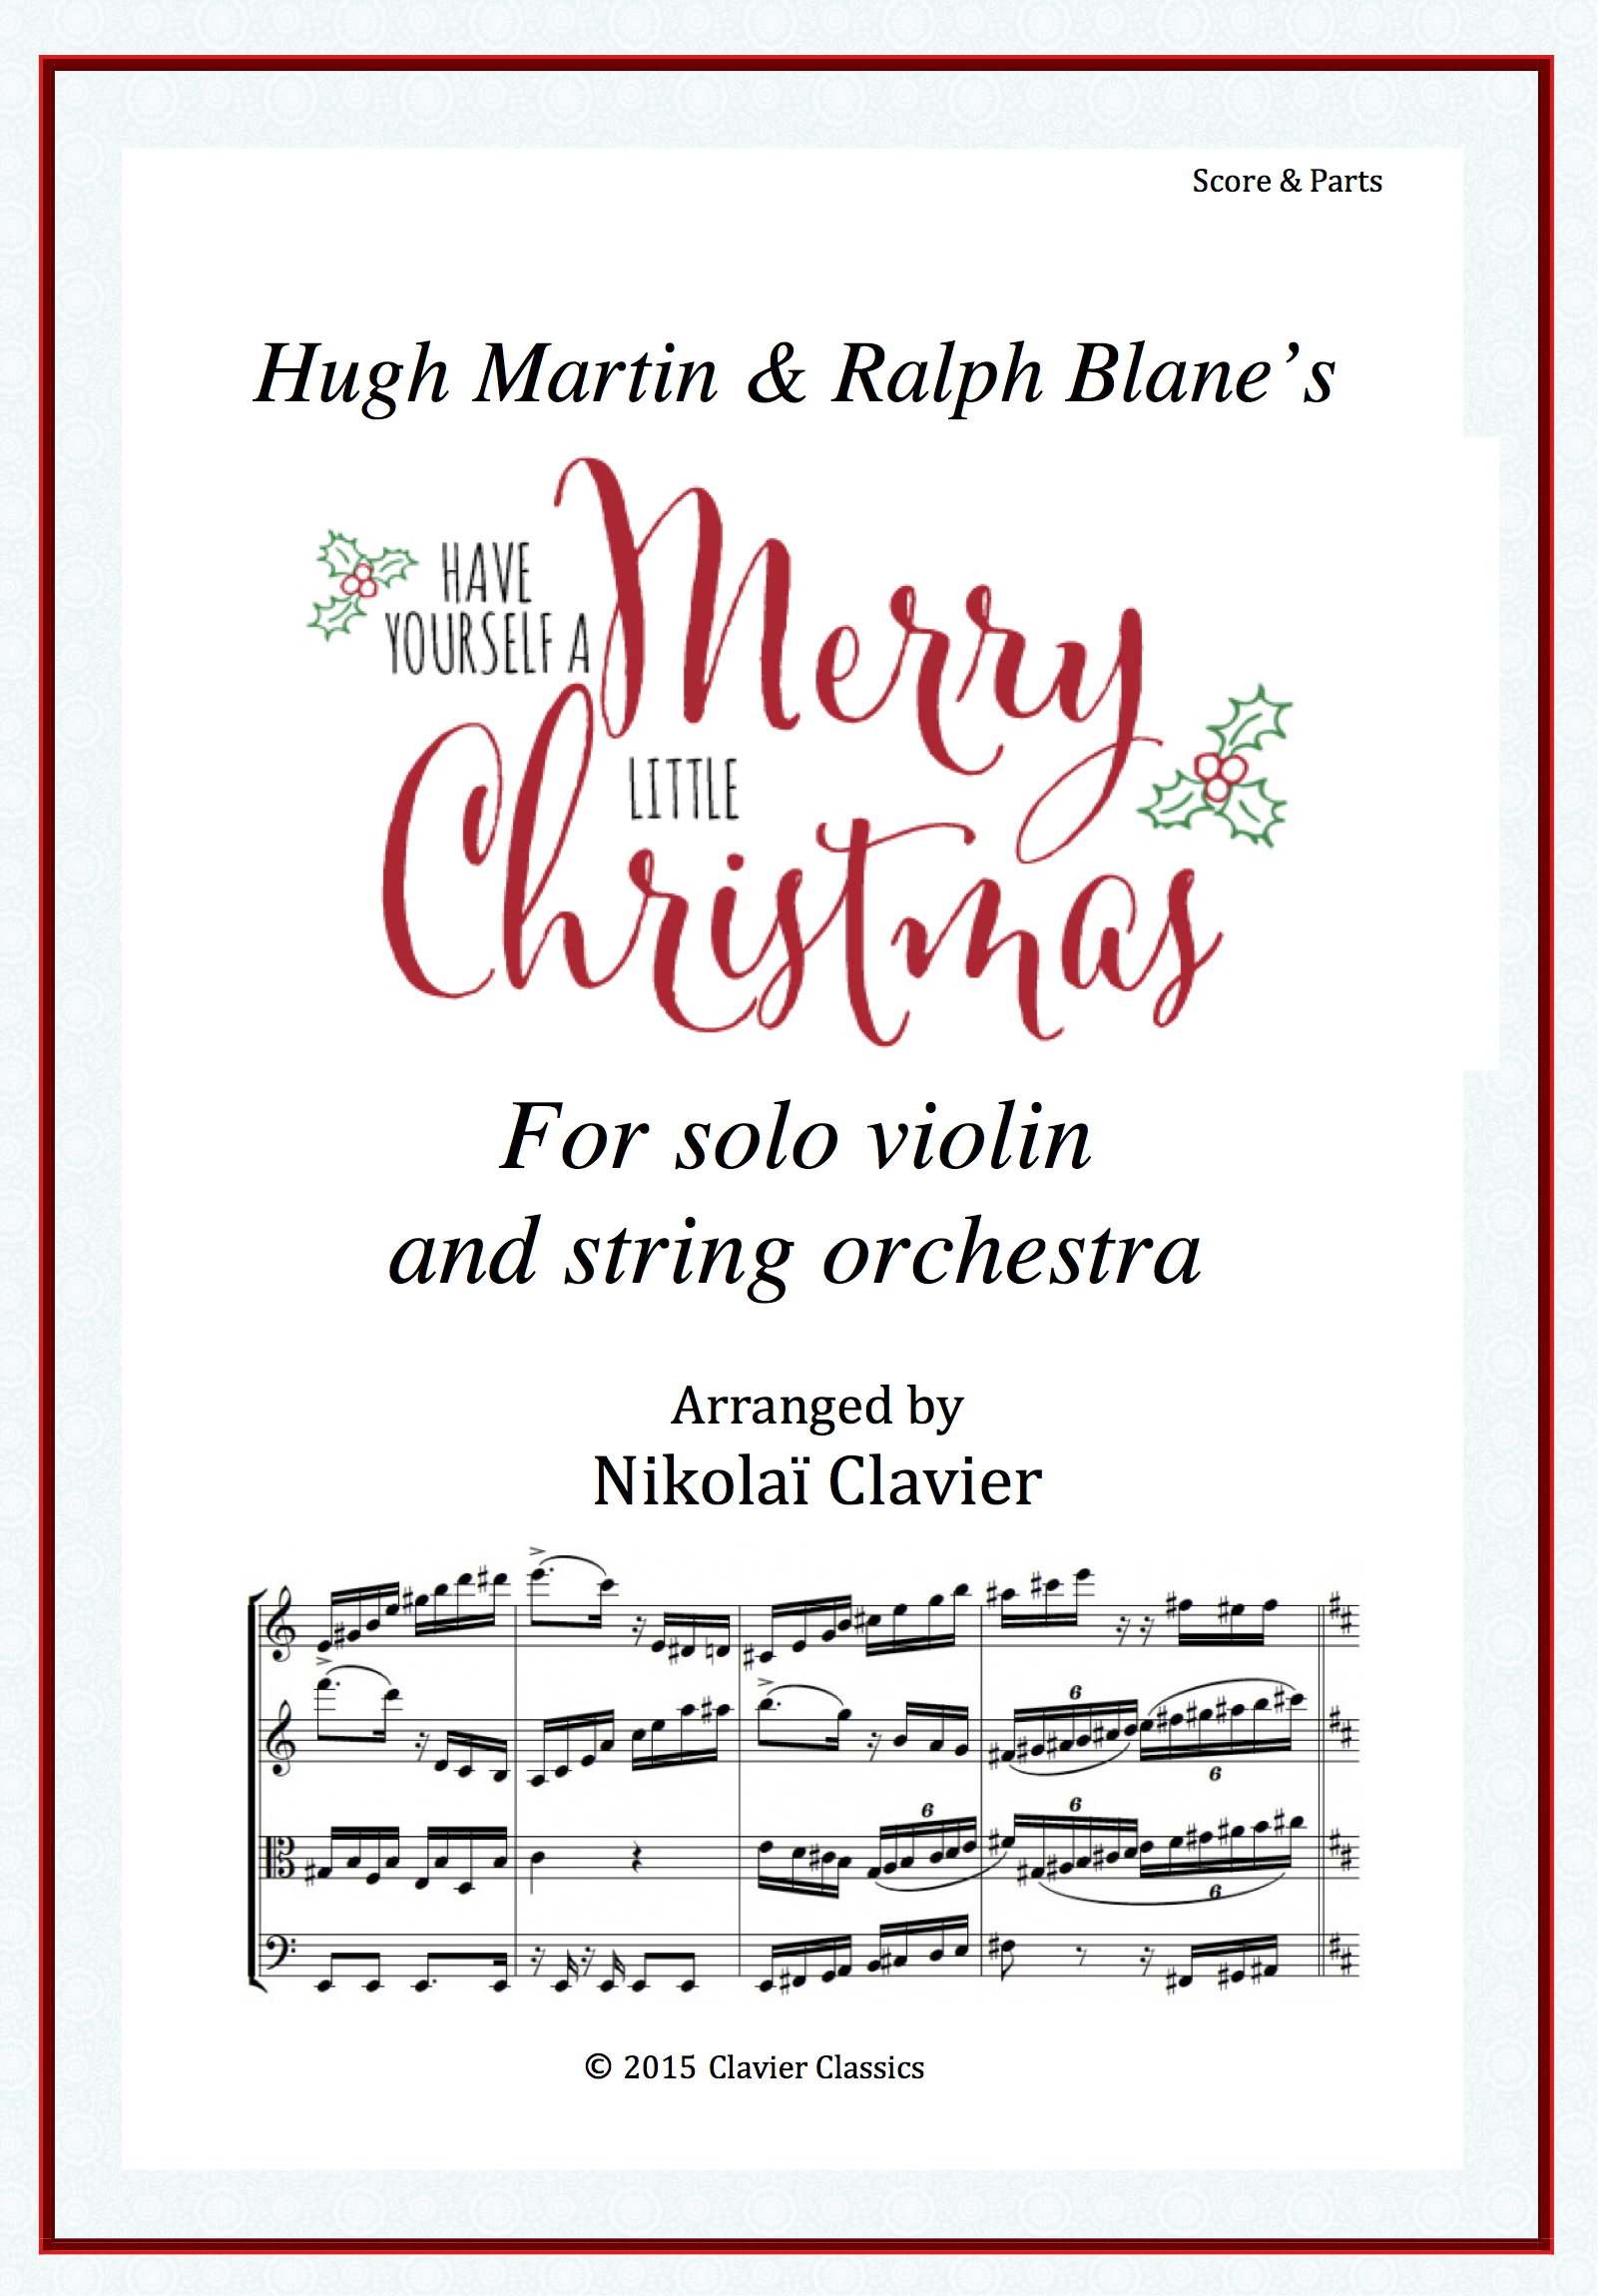 Have Yourself A Merry Little Christmas Violin Sheet Music.Have Yourself A Merry Little Christmas Clavierclassics